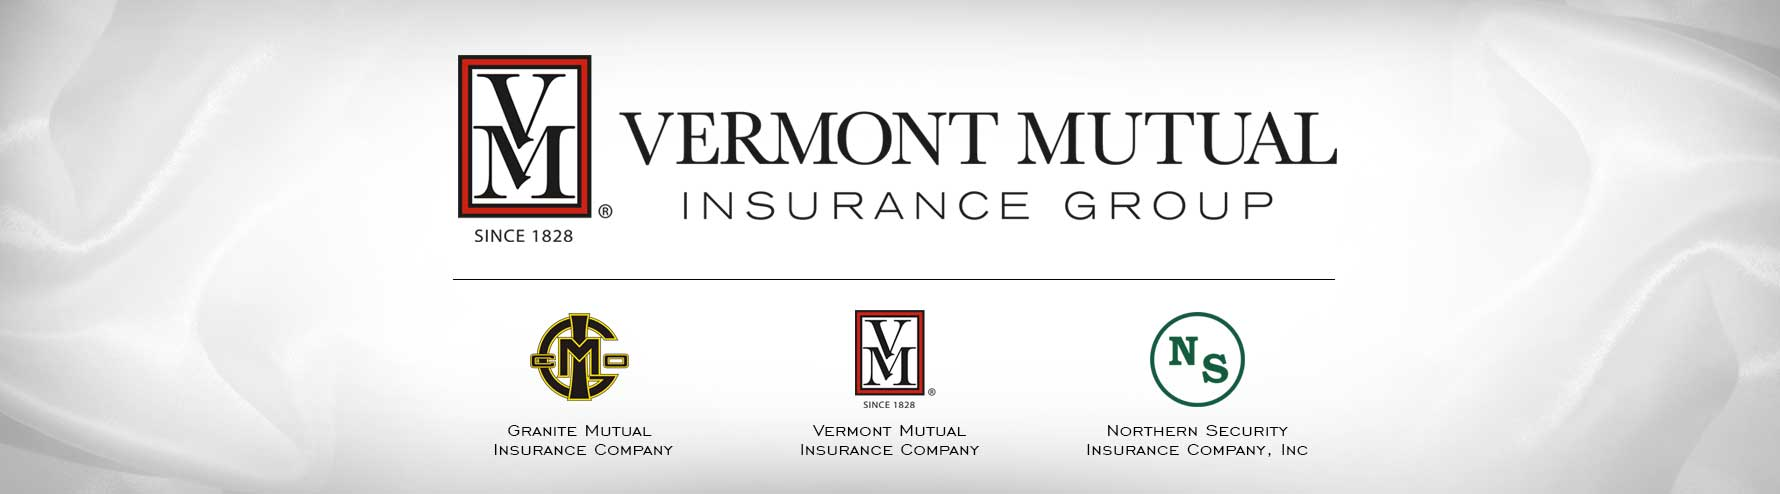 Vermont Mutual Insurance Group - Contact